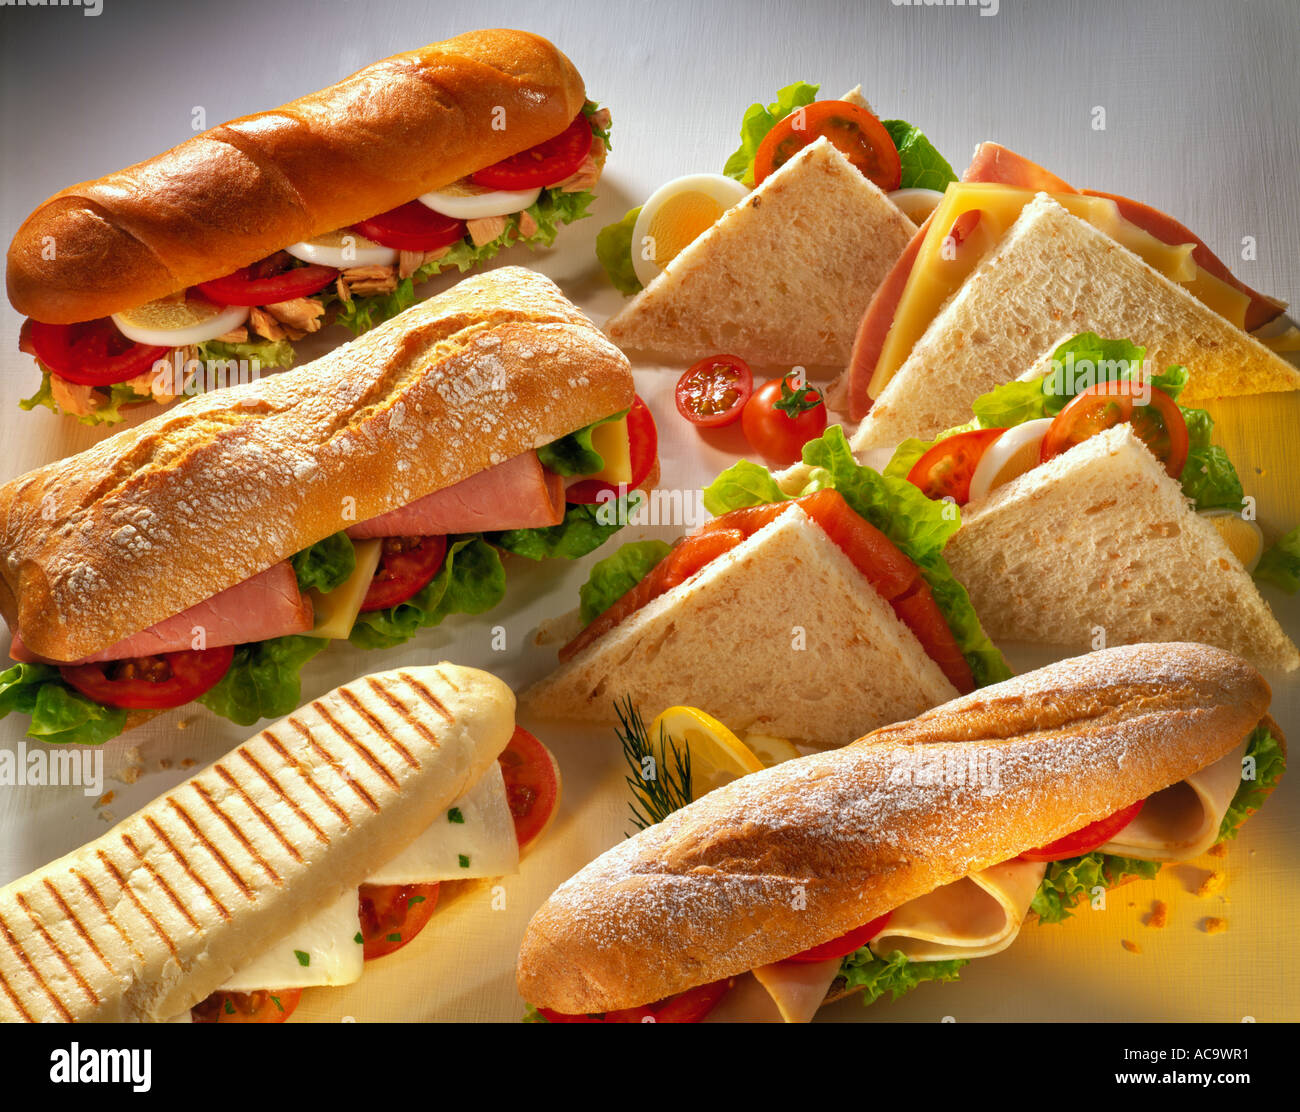 Rolls and sandwiches Tuna and egg salad Swiss cheese and ham..